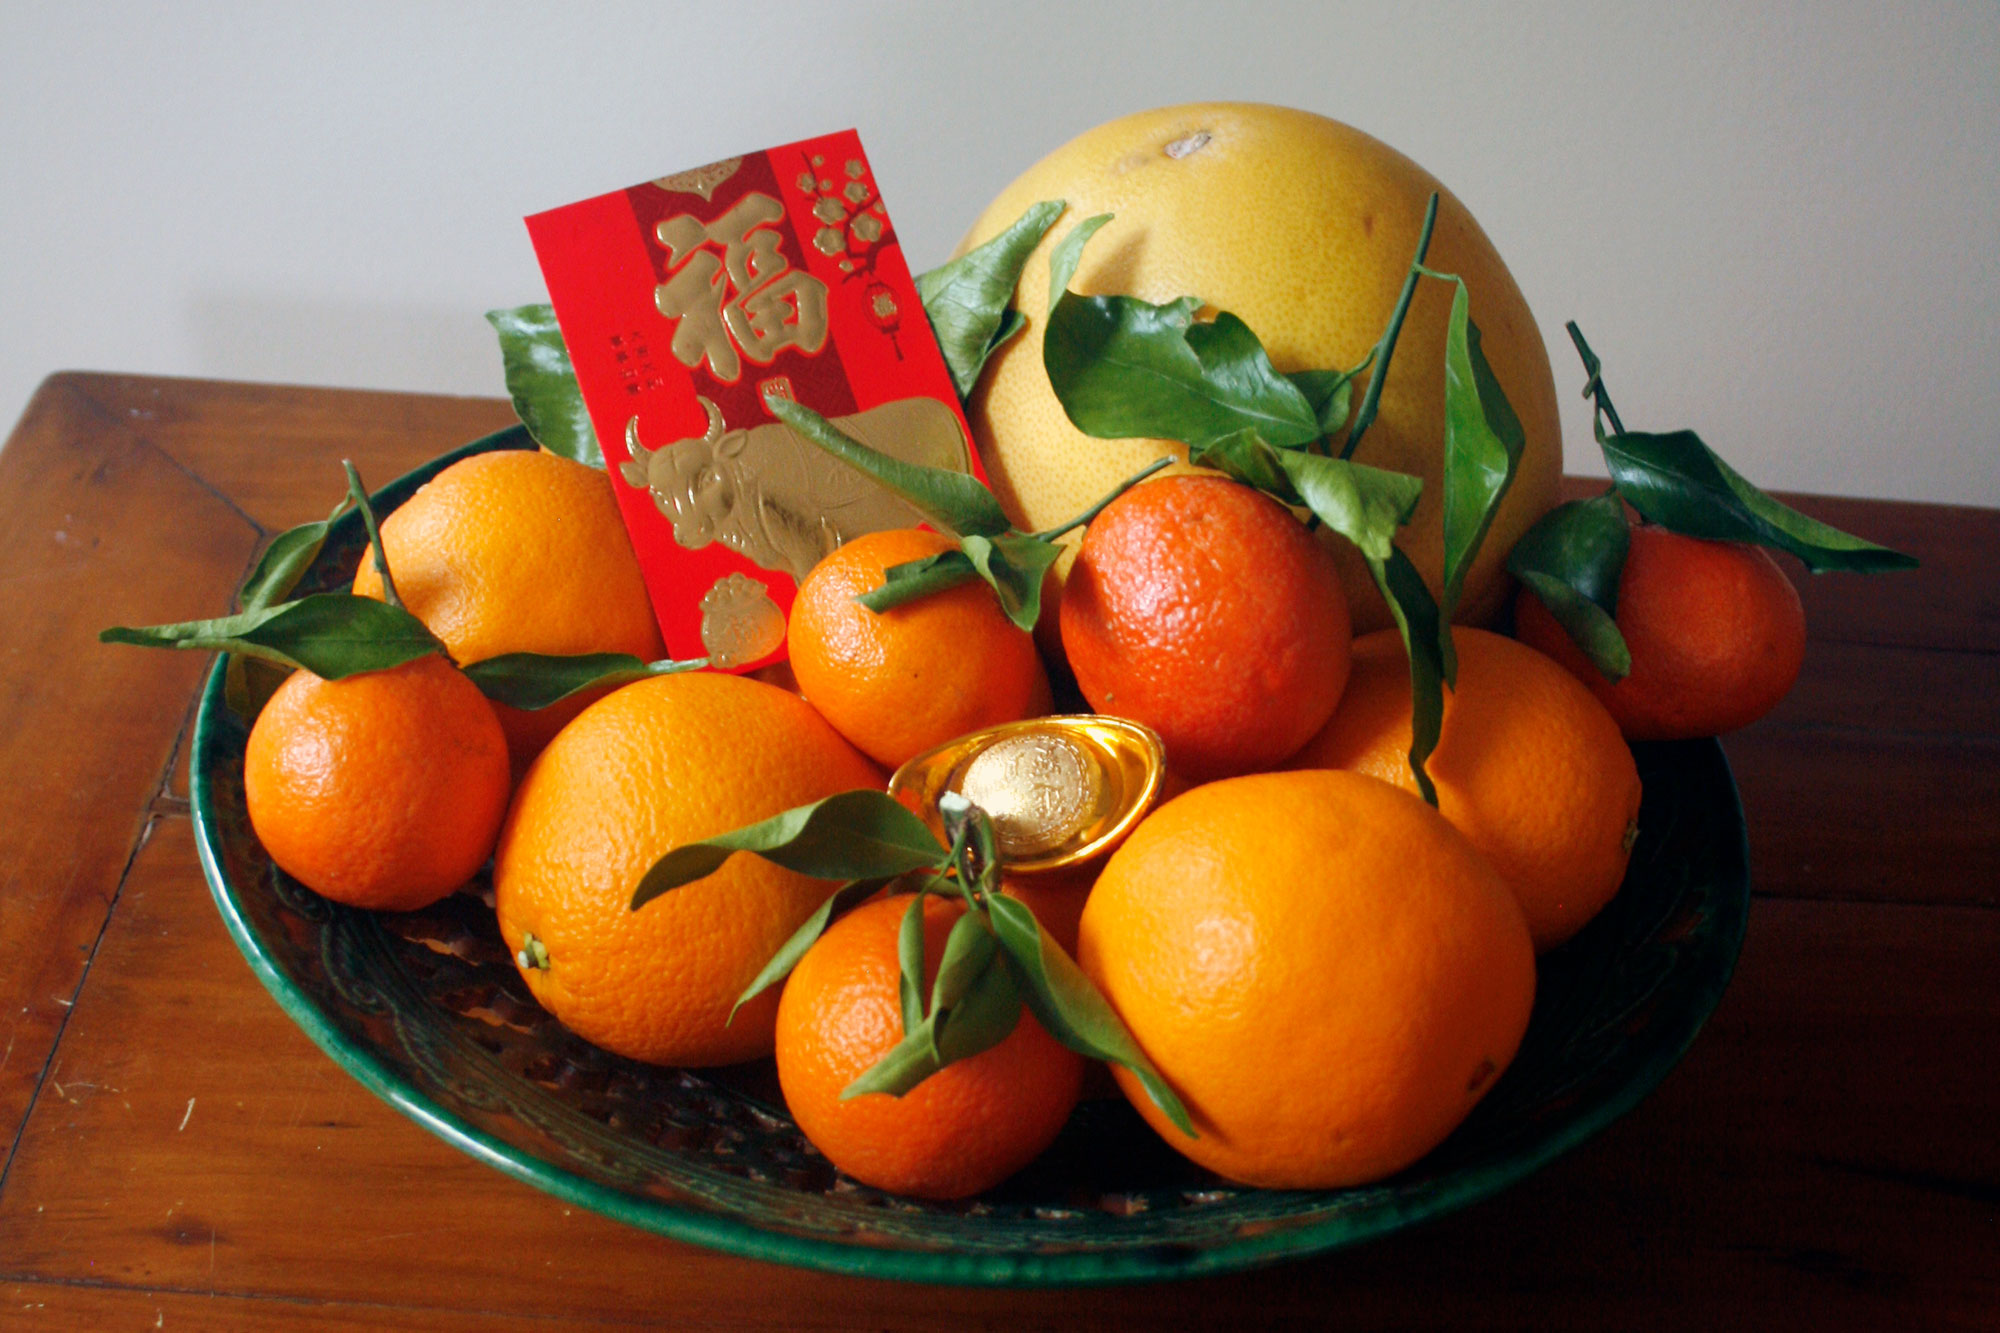 A bowl of citrus fruits with a lucky envelope and ingot